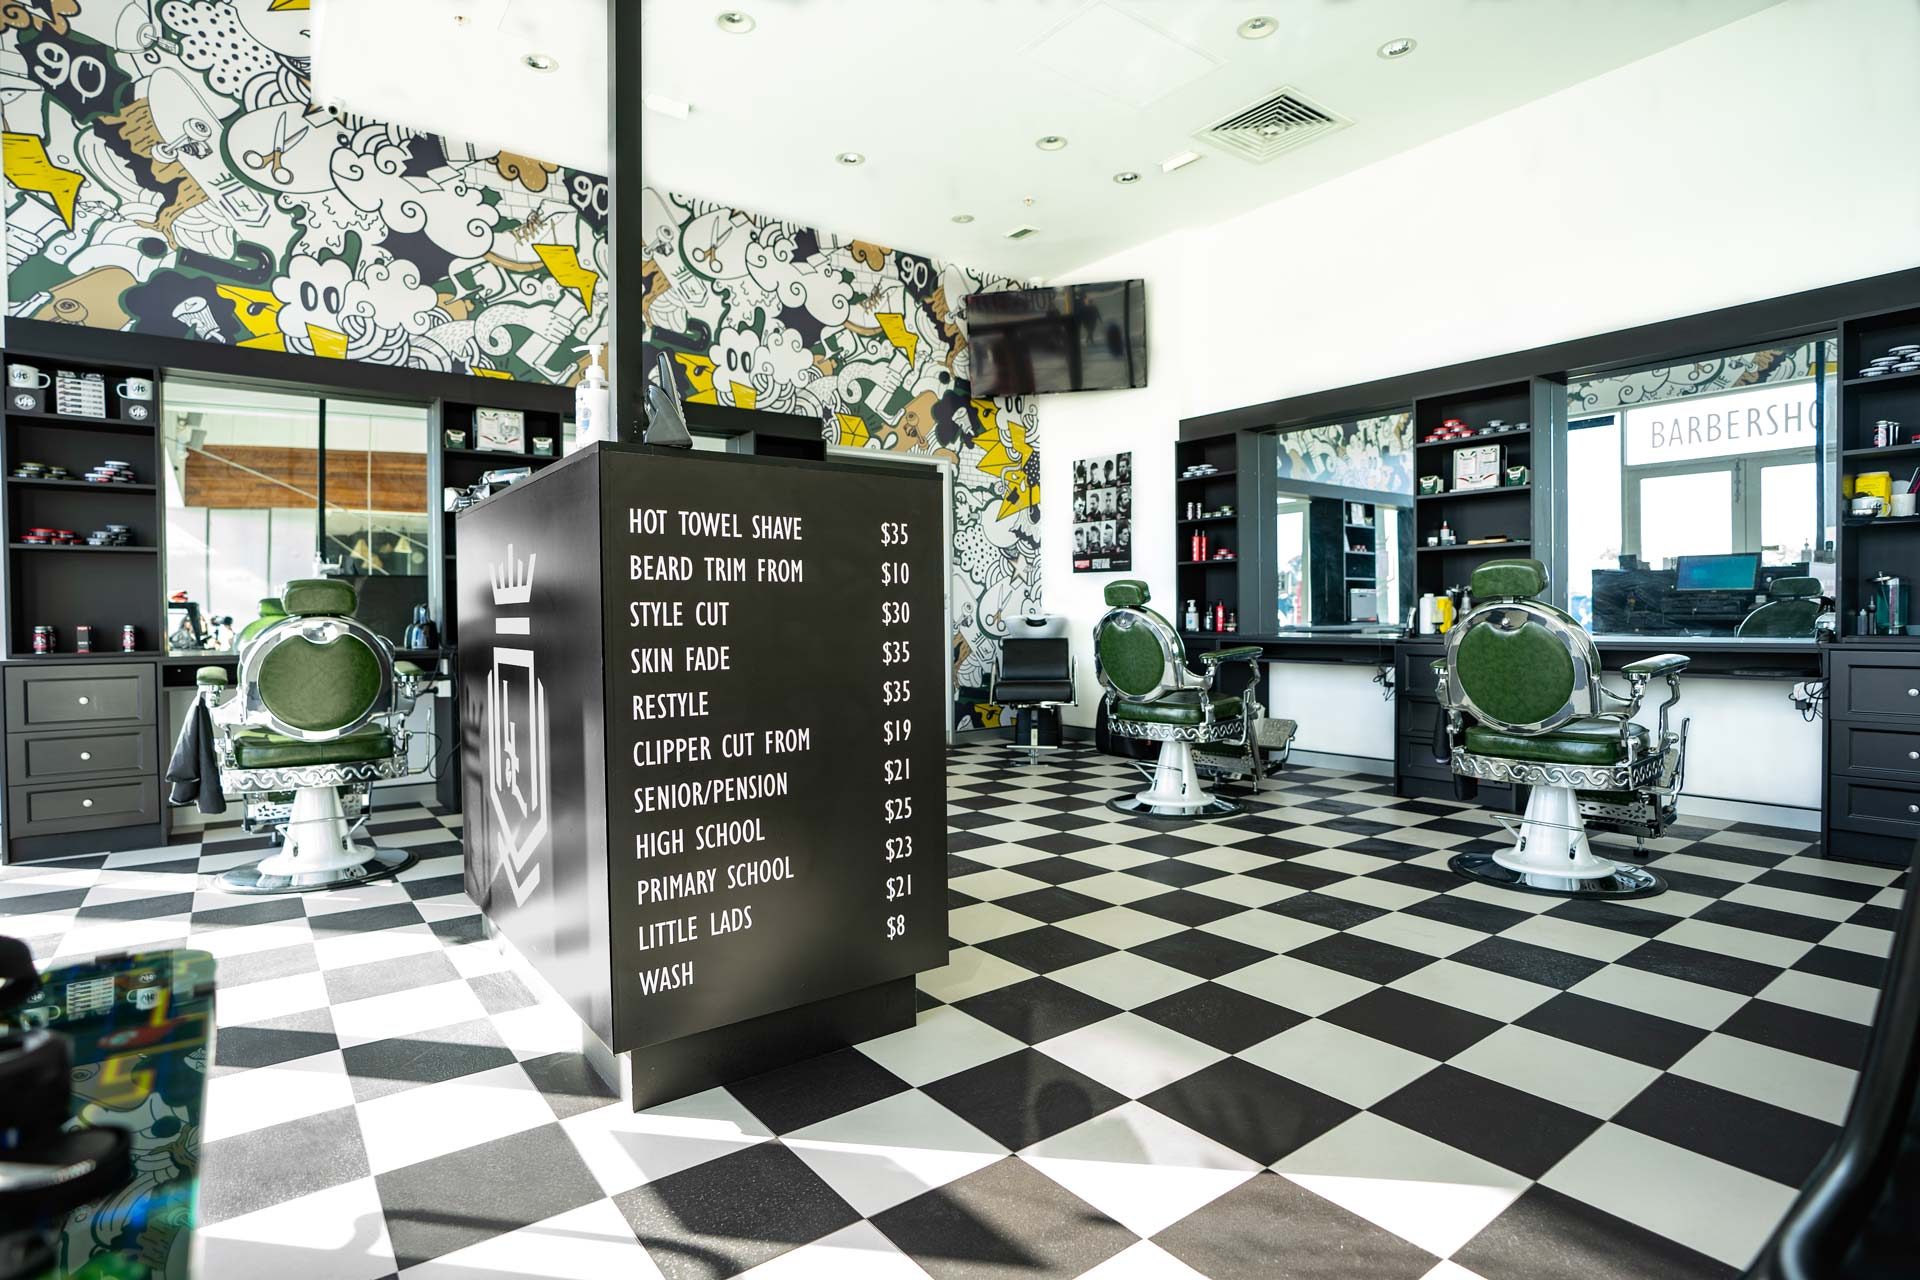 Barbers fitout with chequered flooring, jazzy wallpaper and barber chairs